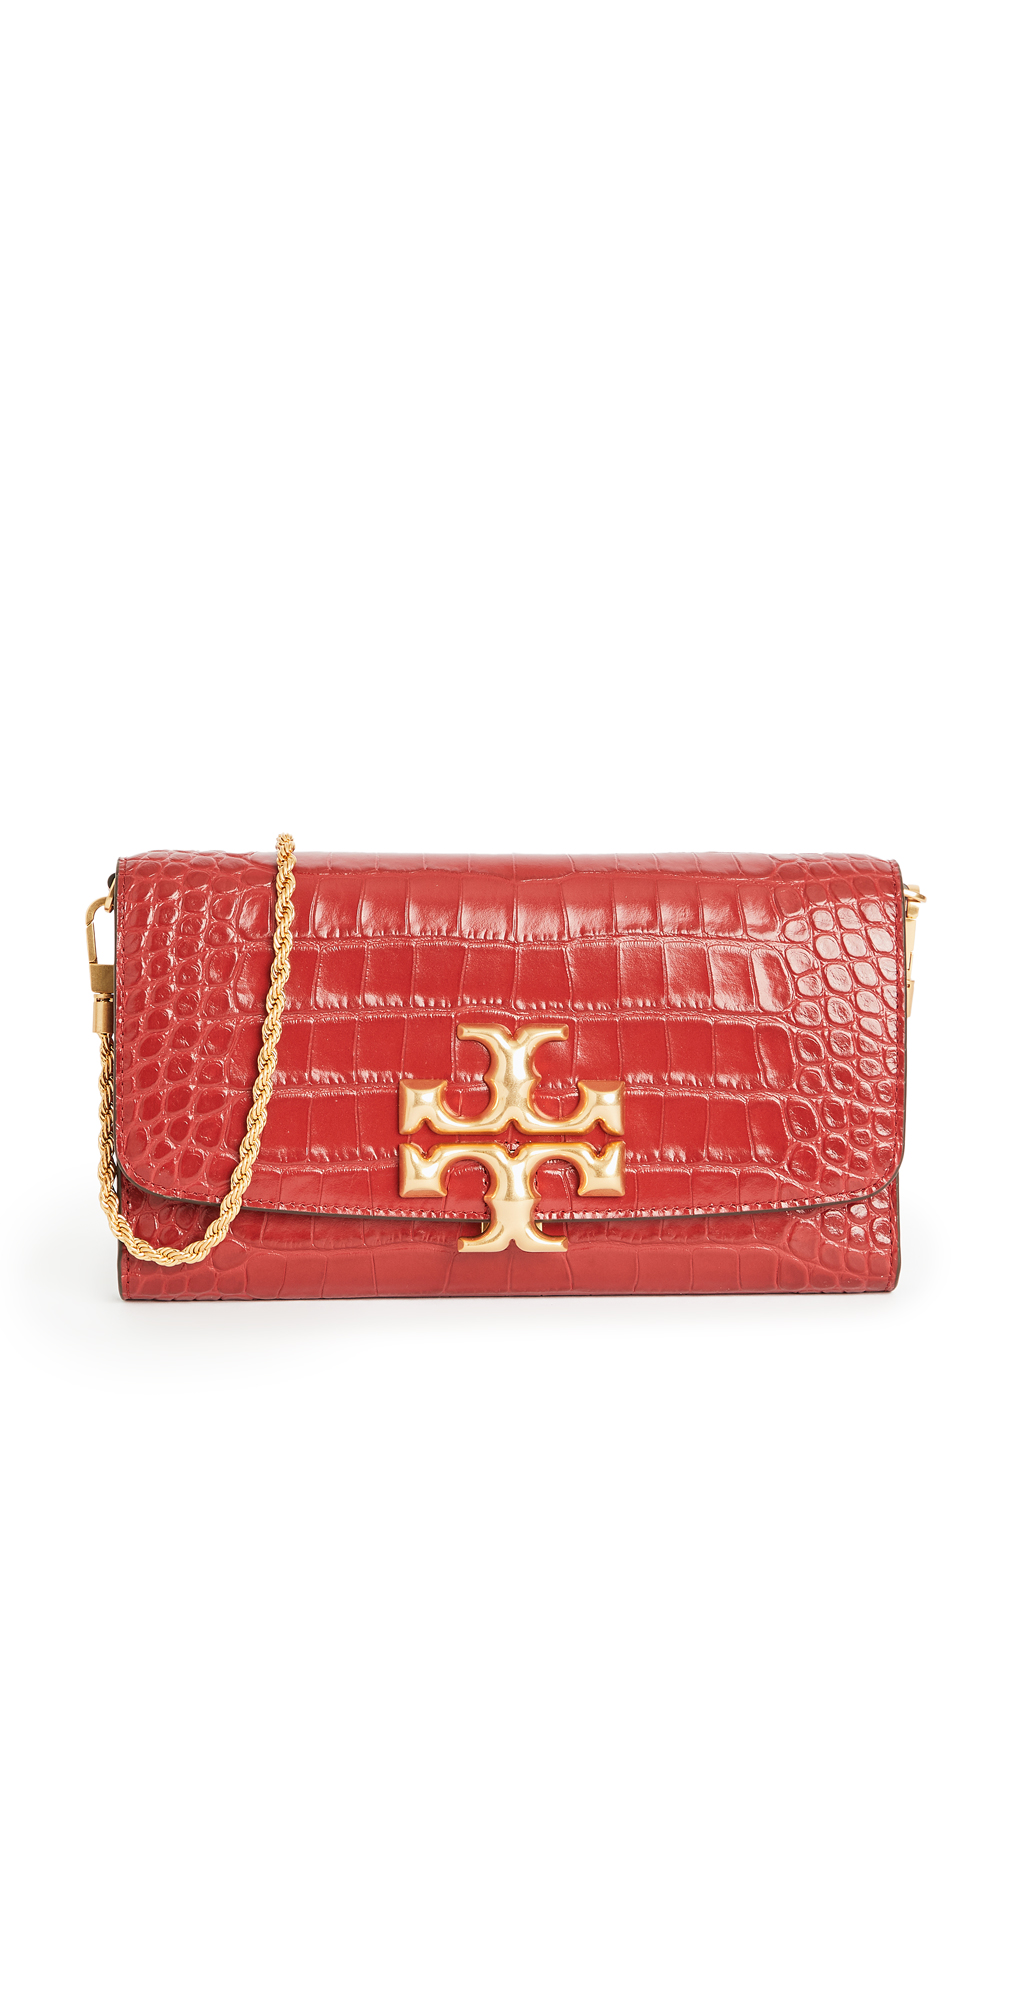 Tory Burch Eleanor Embossed Clutch